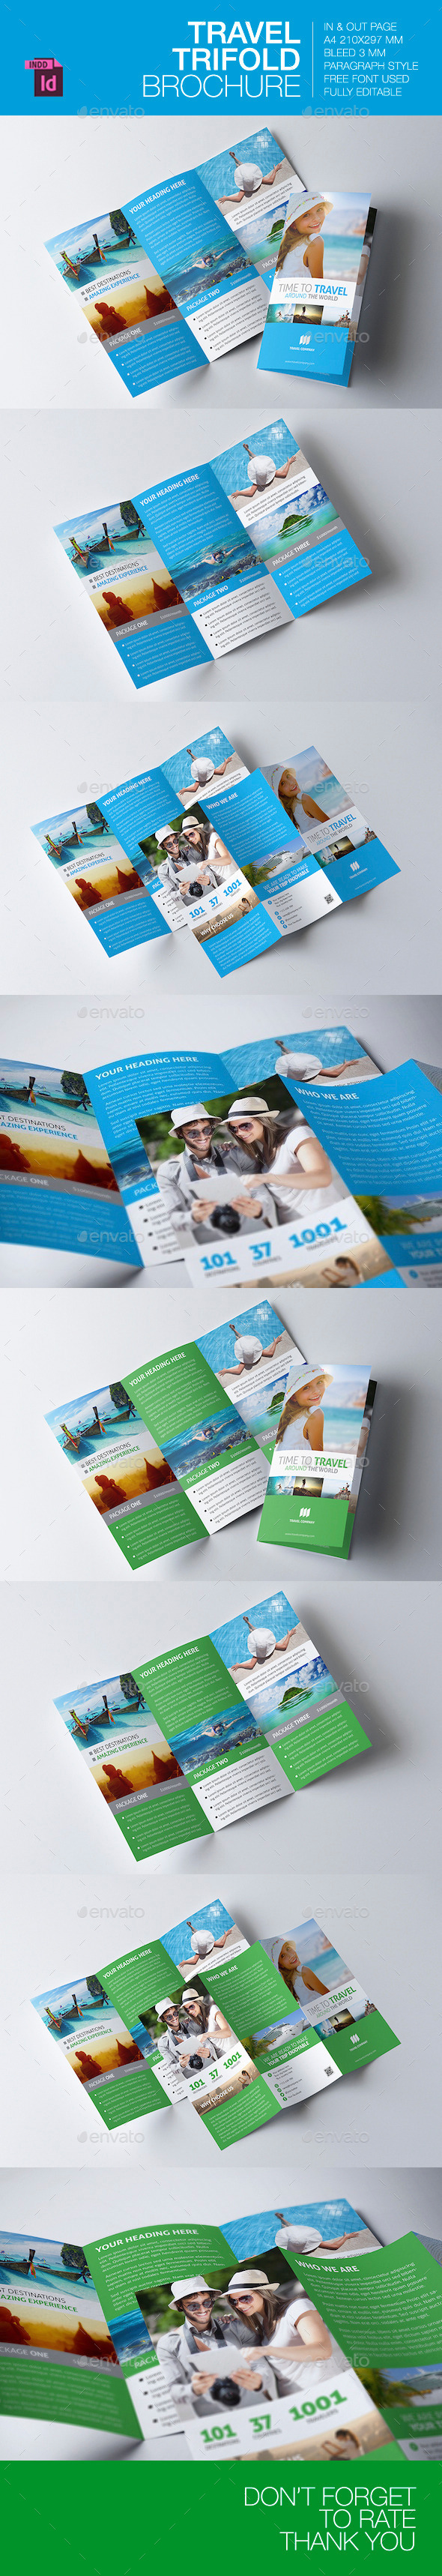 GraphicRiver Travel Trifold Brochure V.3 9066958